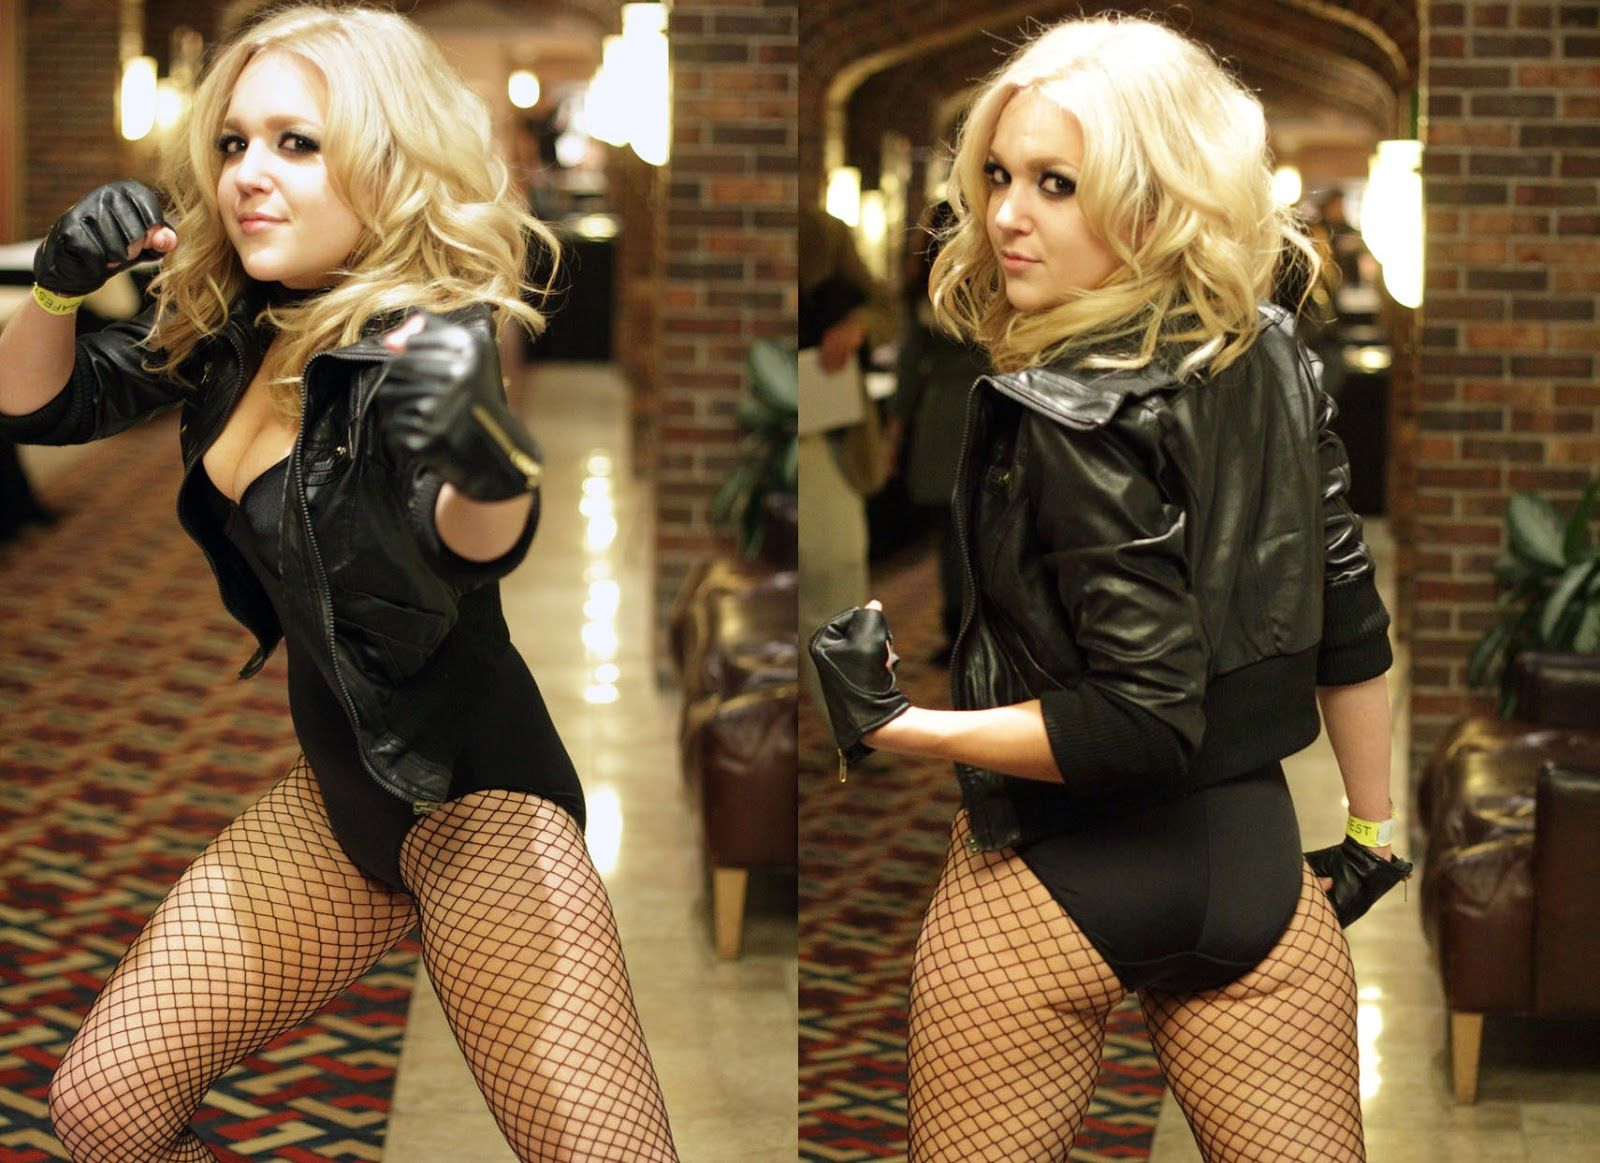 'Xplosion of Awesome: Black Canary by Nicole Marie Jean